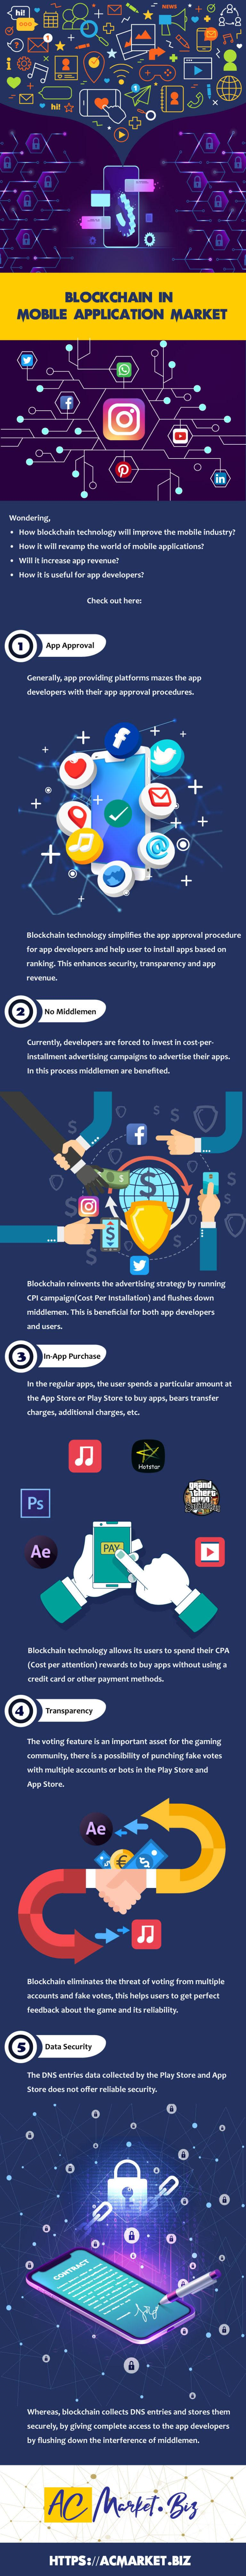 Benefits Of Blockchain Technology In Mobile Applications Market